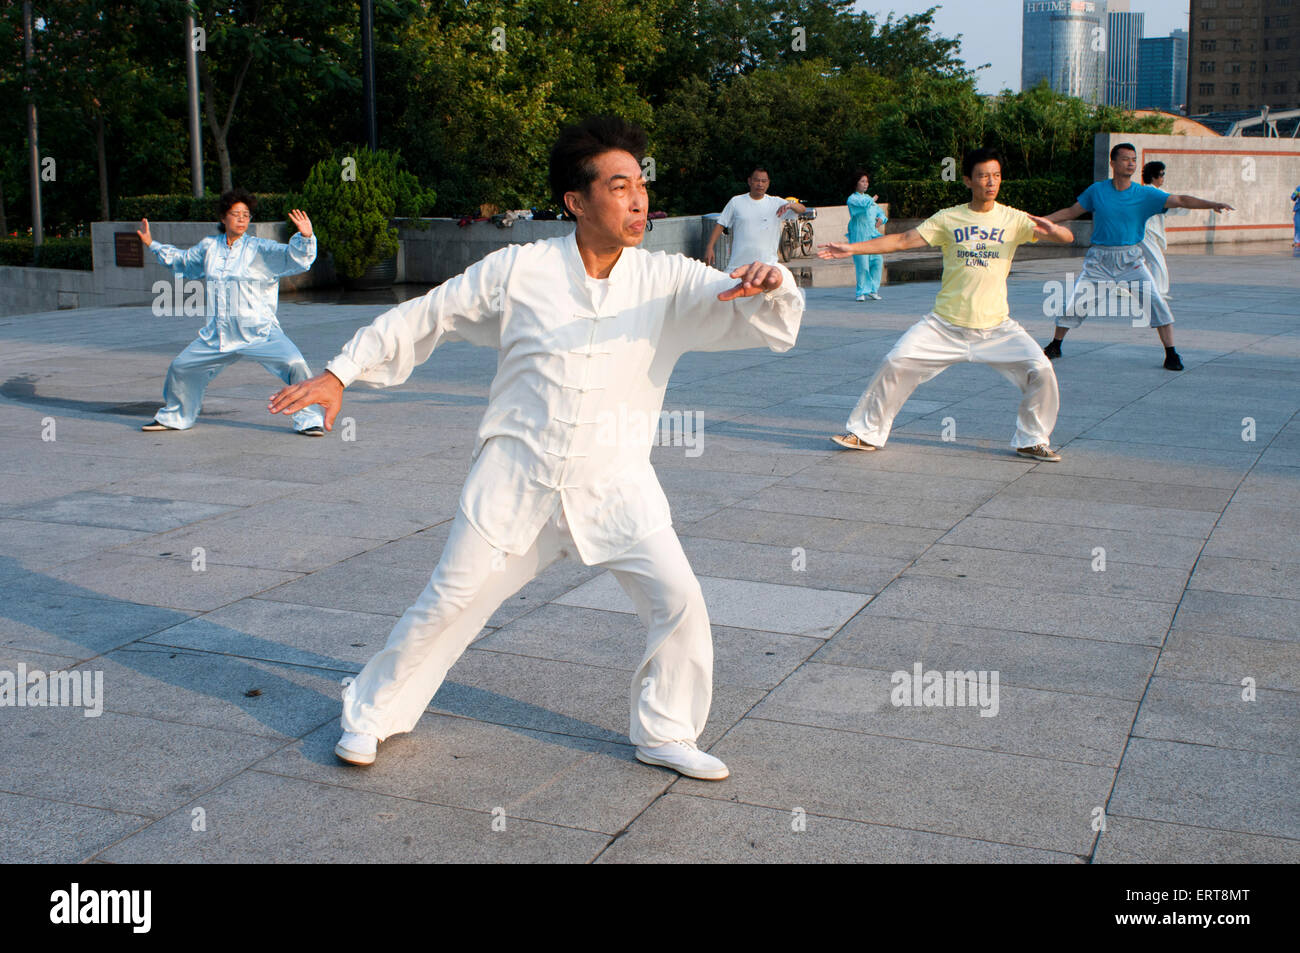 China, Shanghai, morning tai chi exercise on The Bund. Shanghi Bund : Early morning tai chi exercises with swords - Stock Image